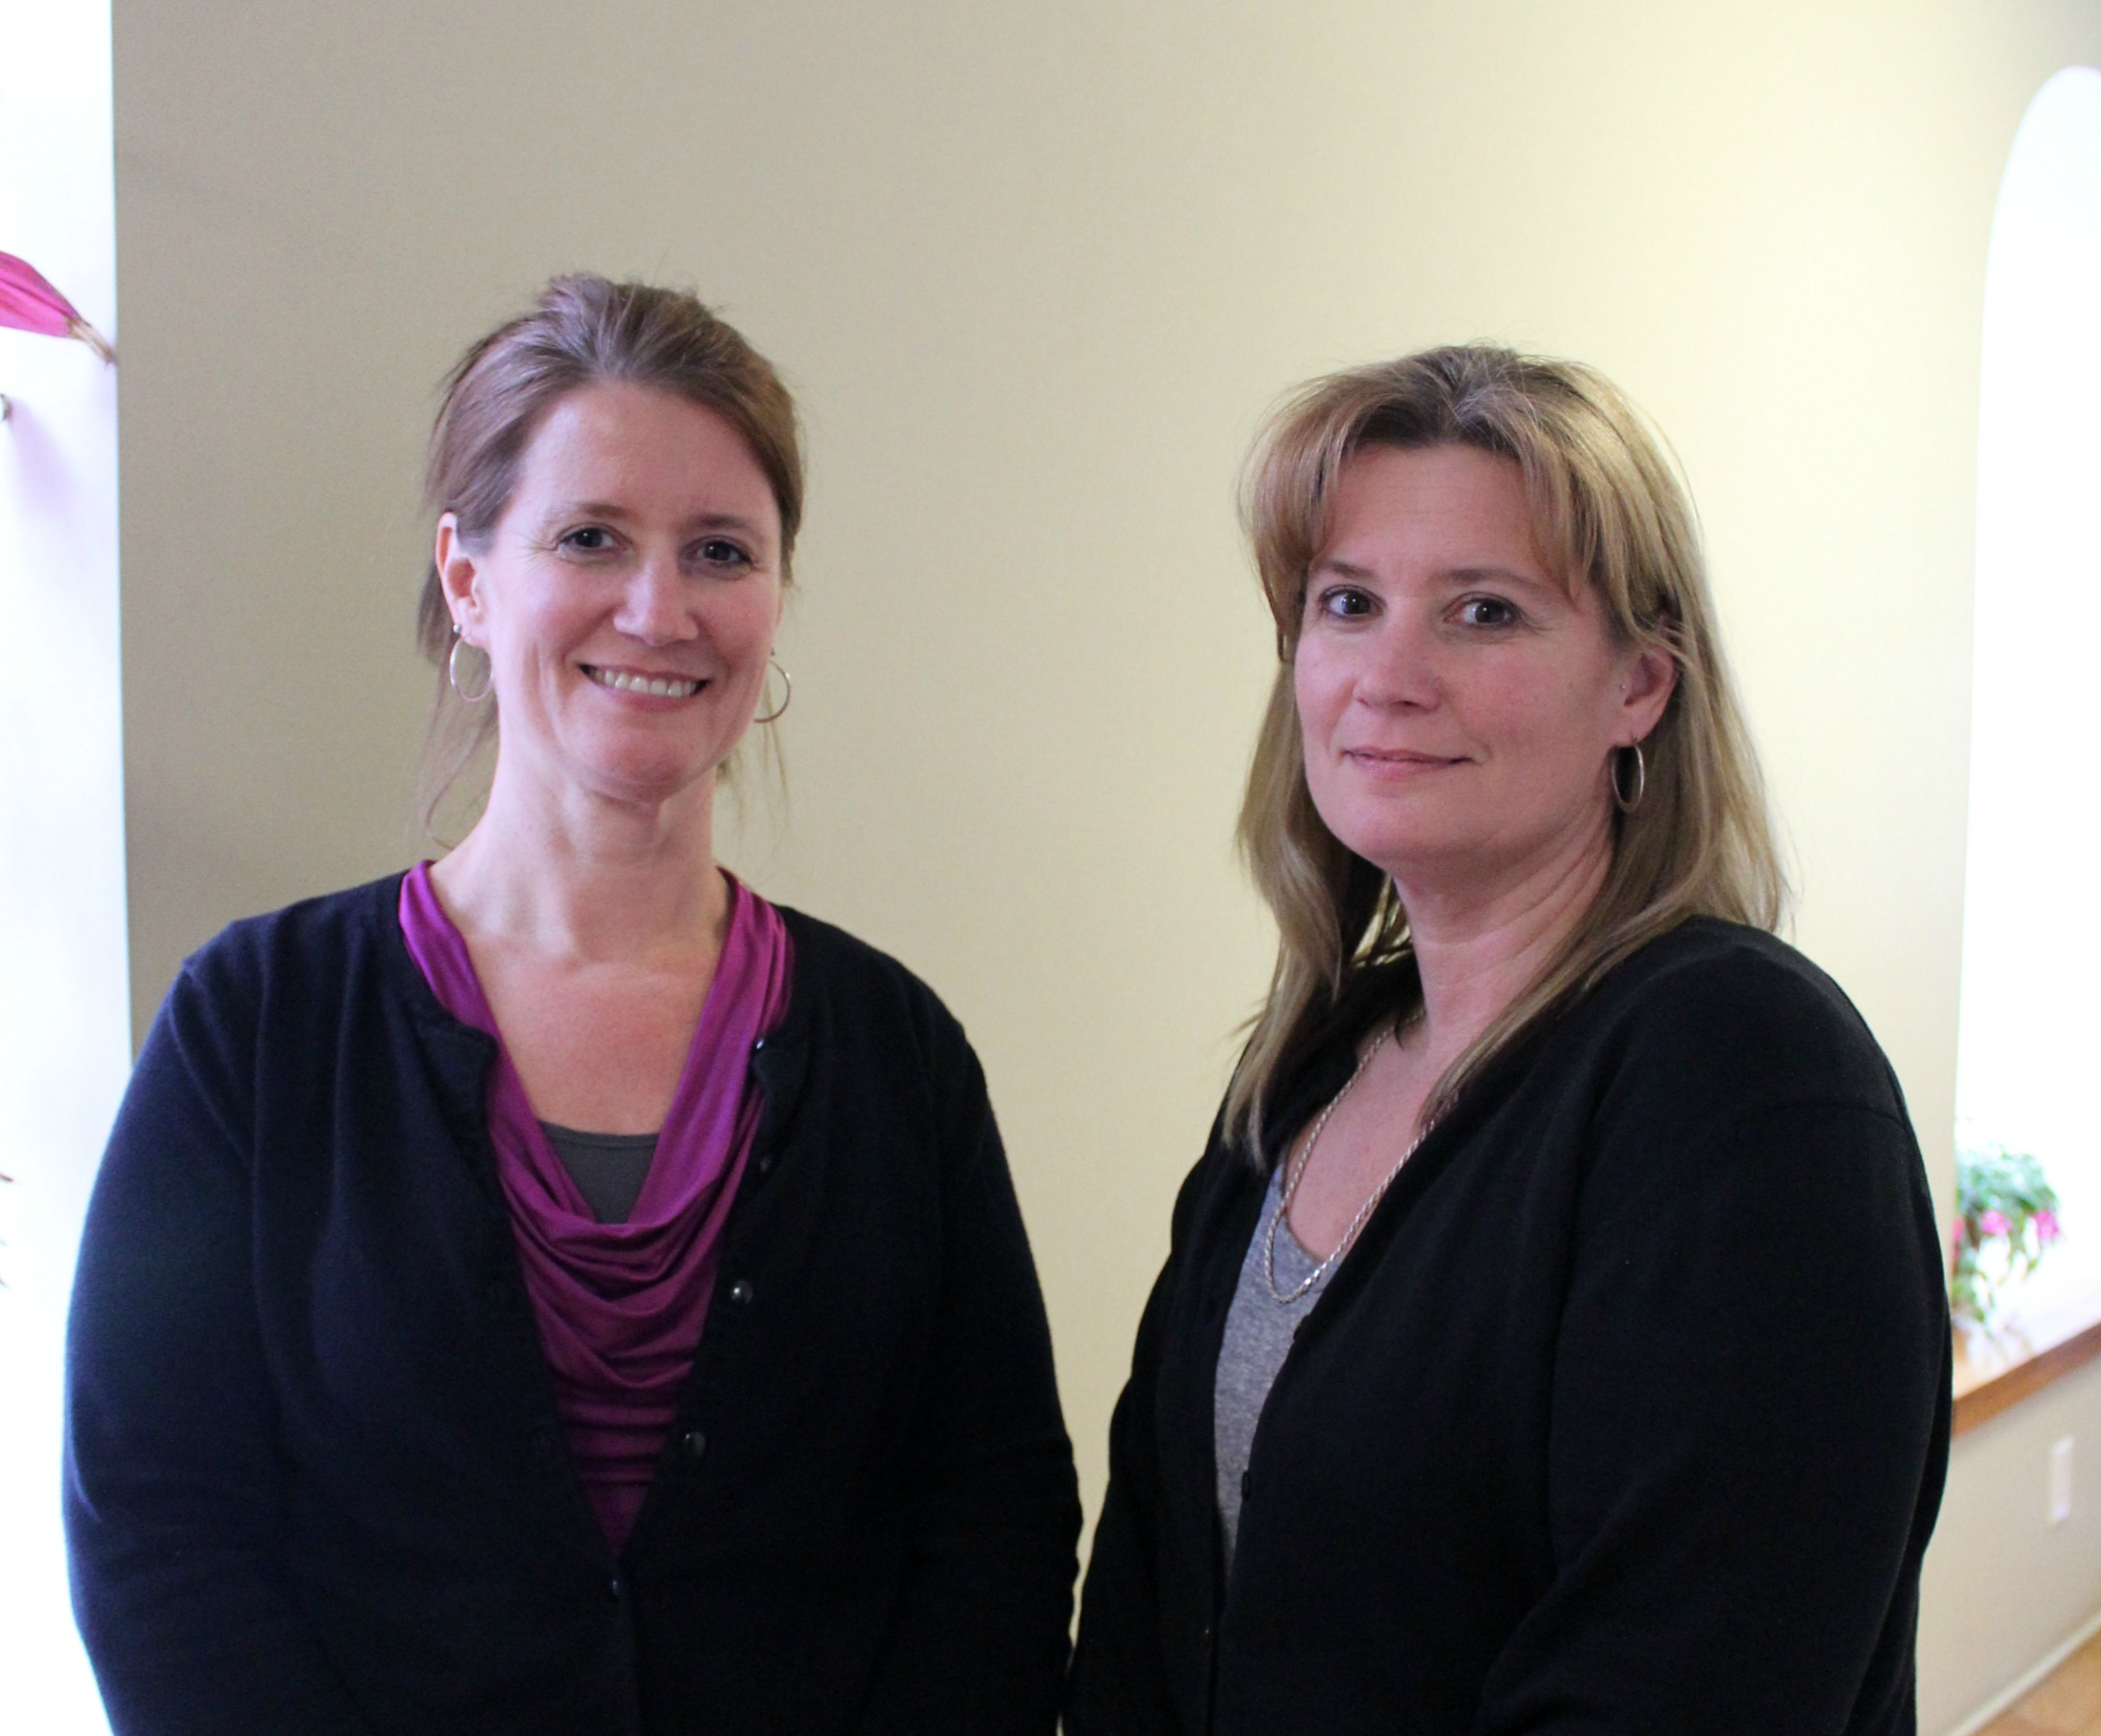 Melynda Miller and Melyssa Whitcomb of Union Bank